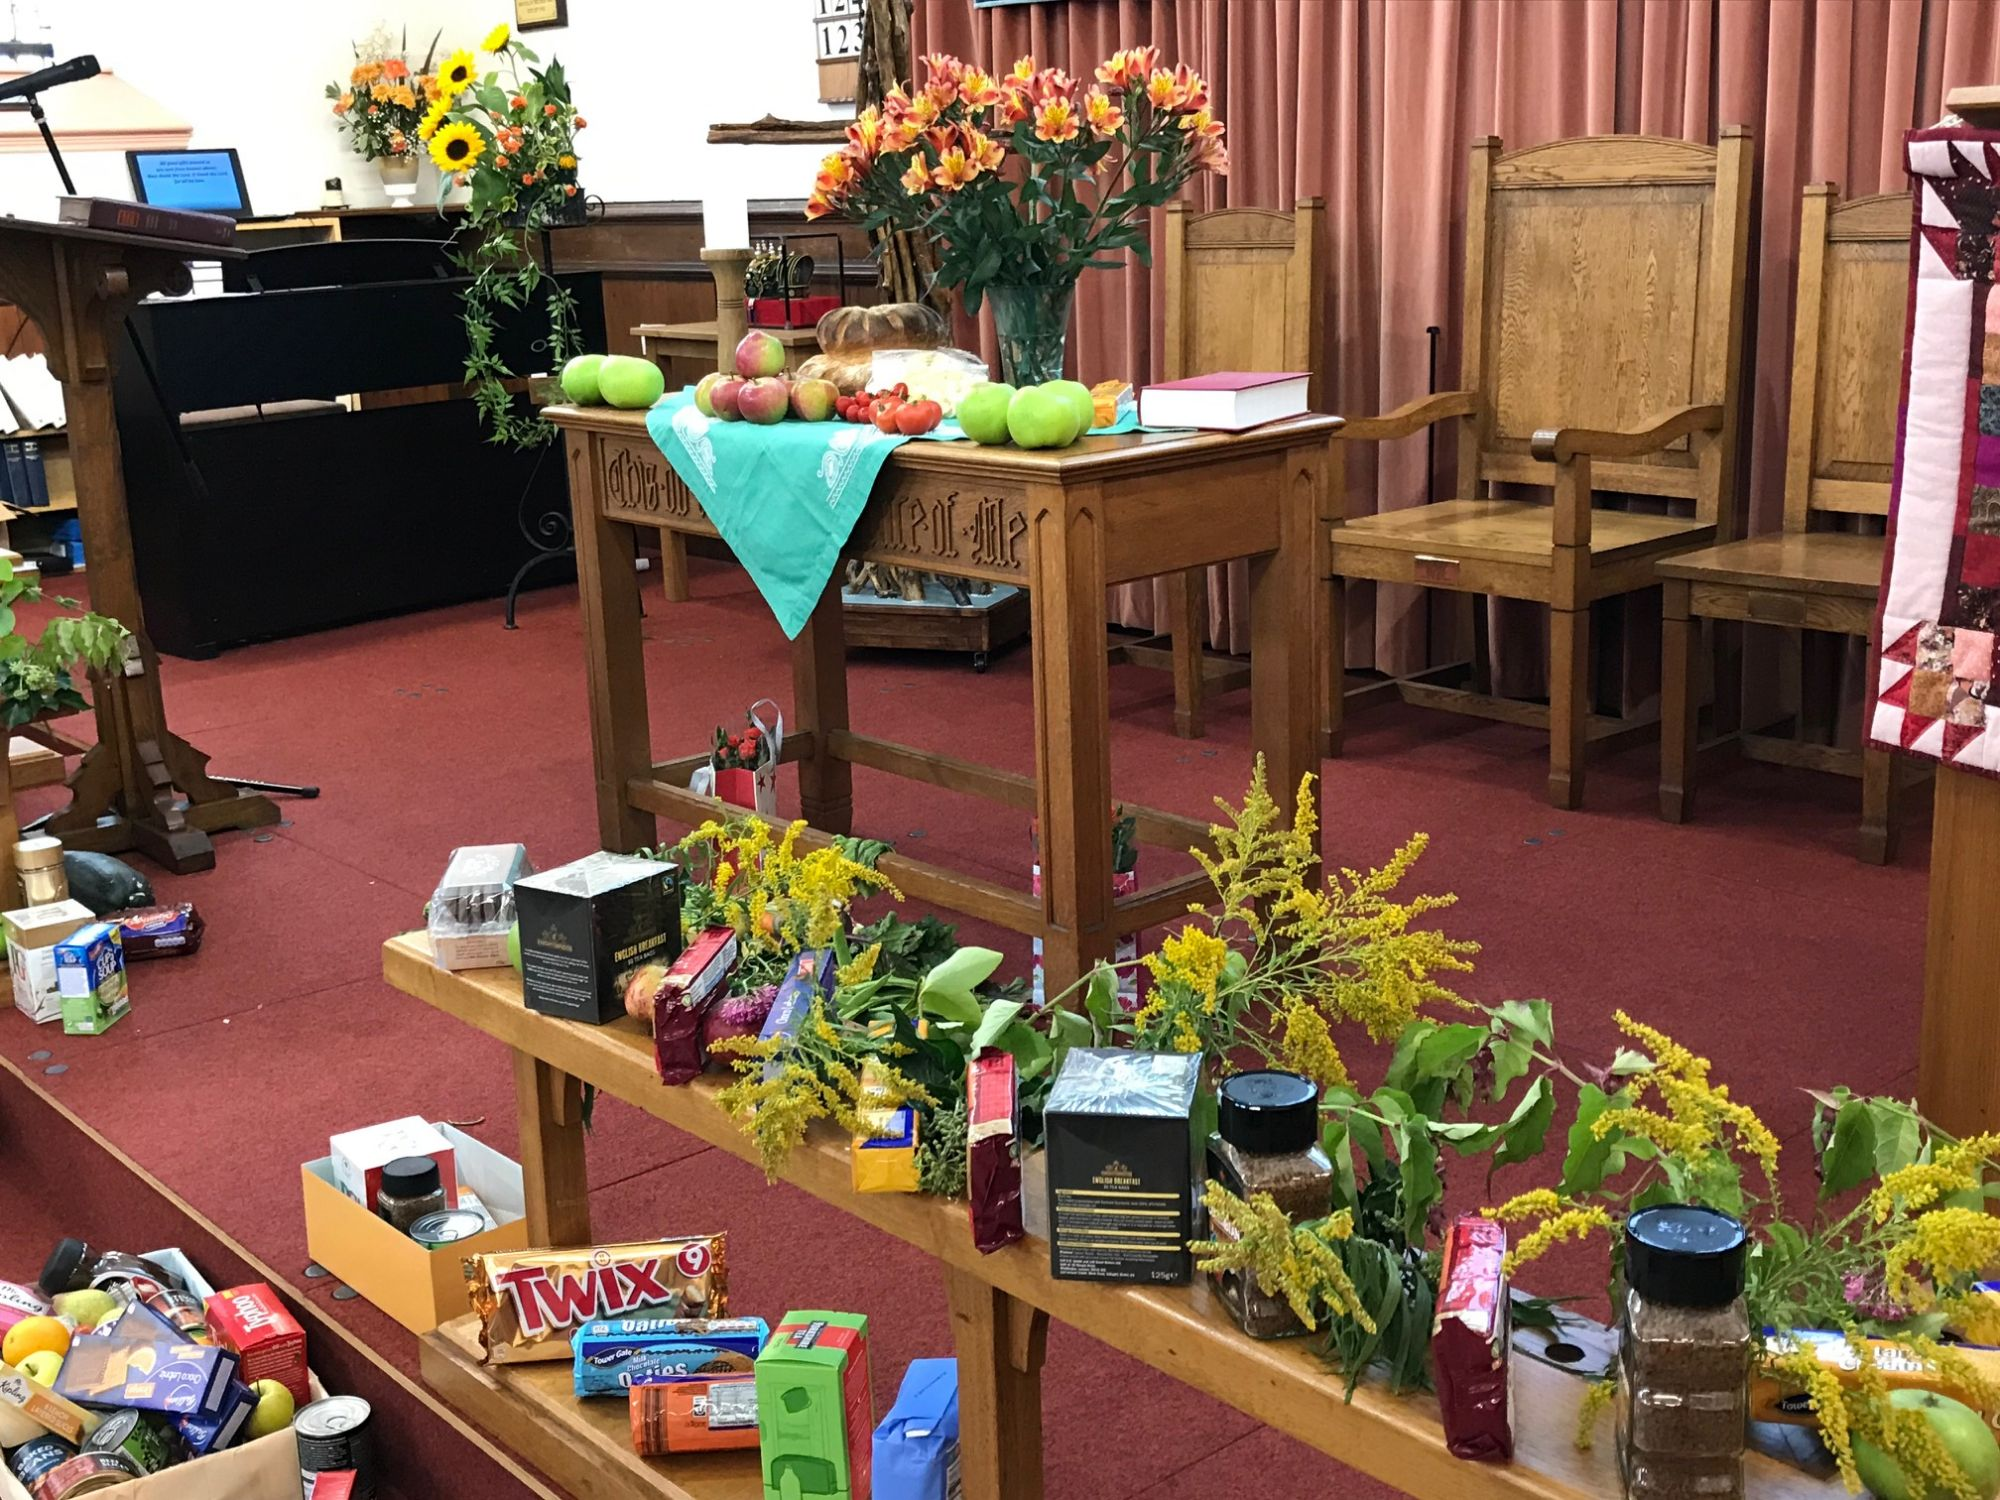 Display of Harvest gifts at the front of the Church